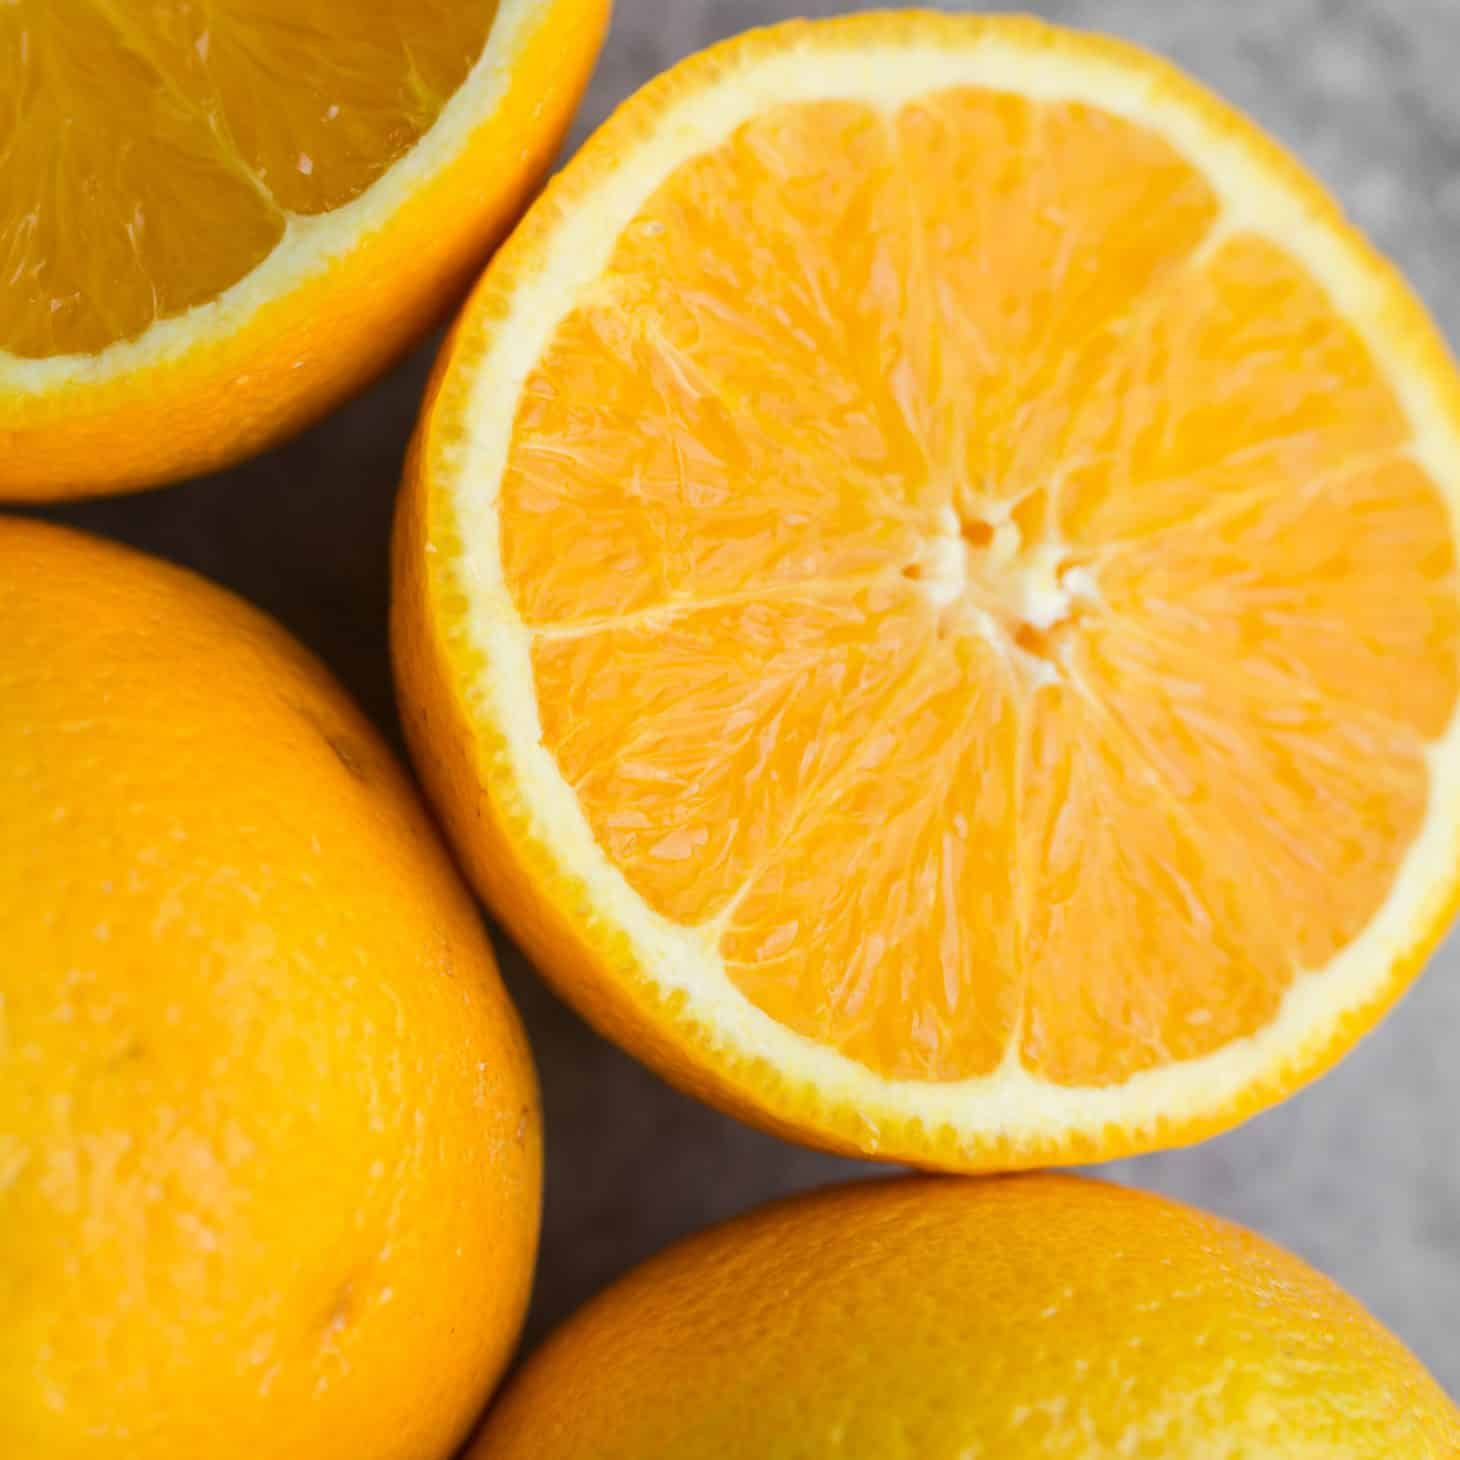 Oranges - Explore an Ingredient - Naturally Ella